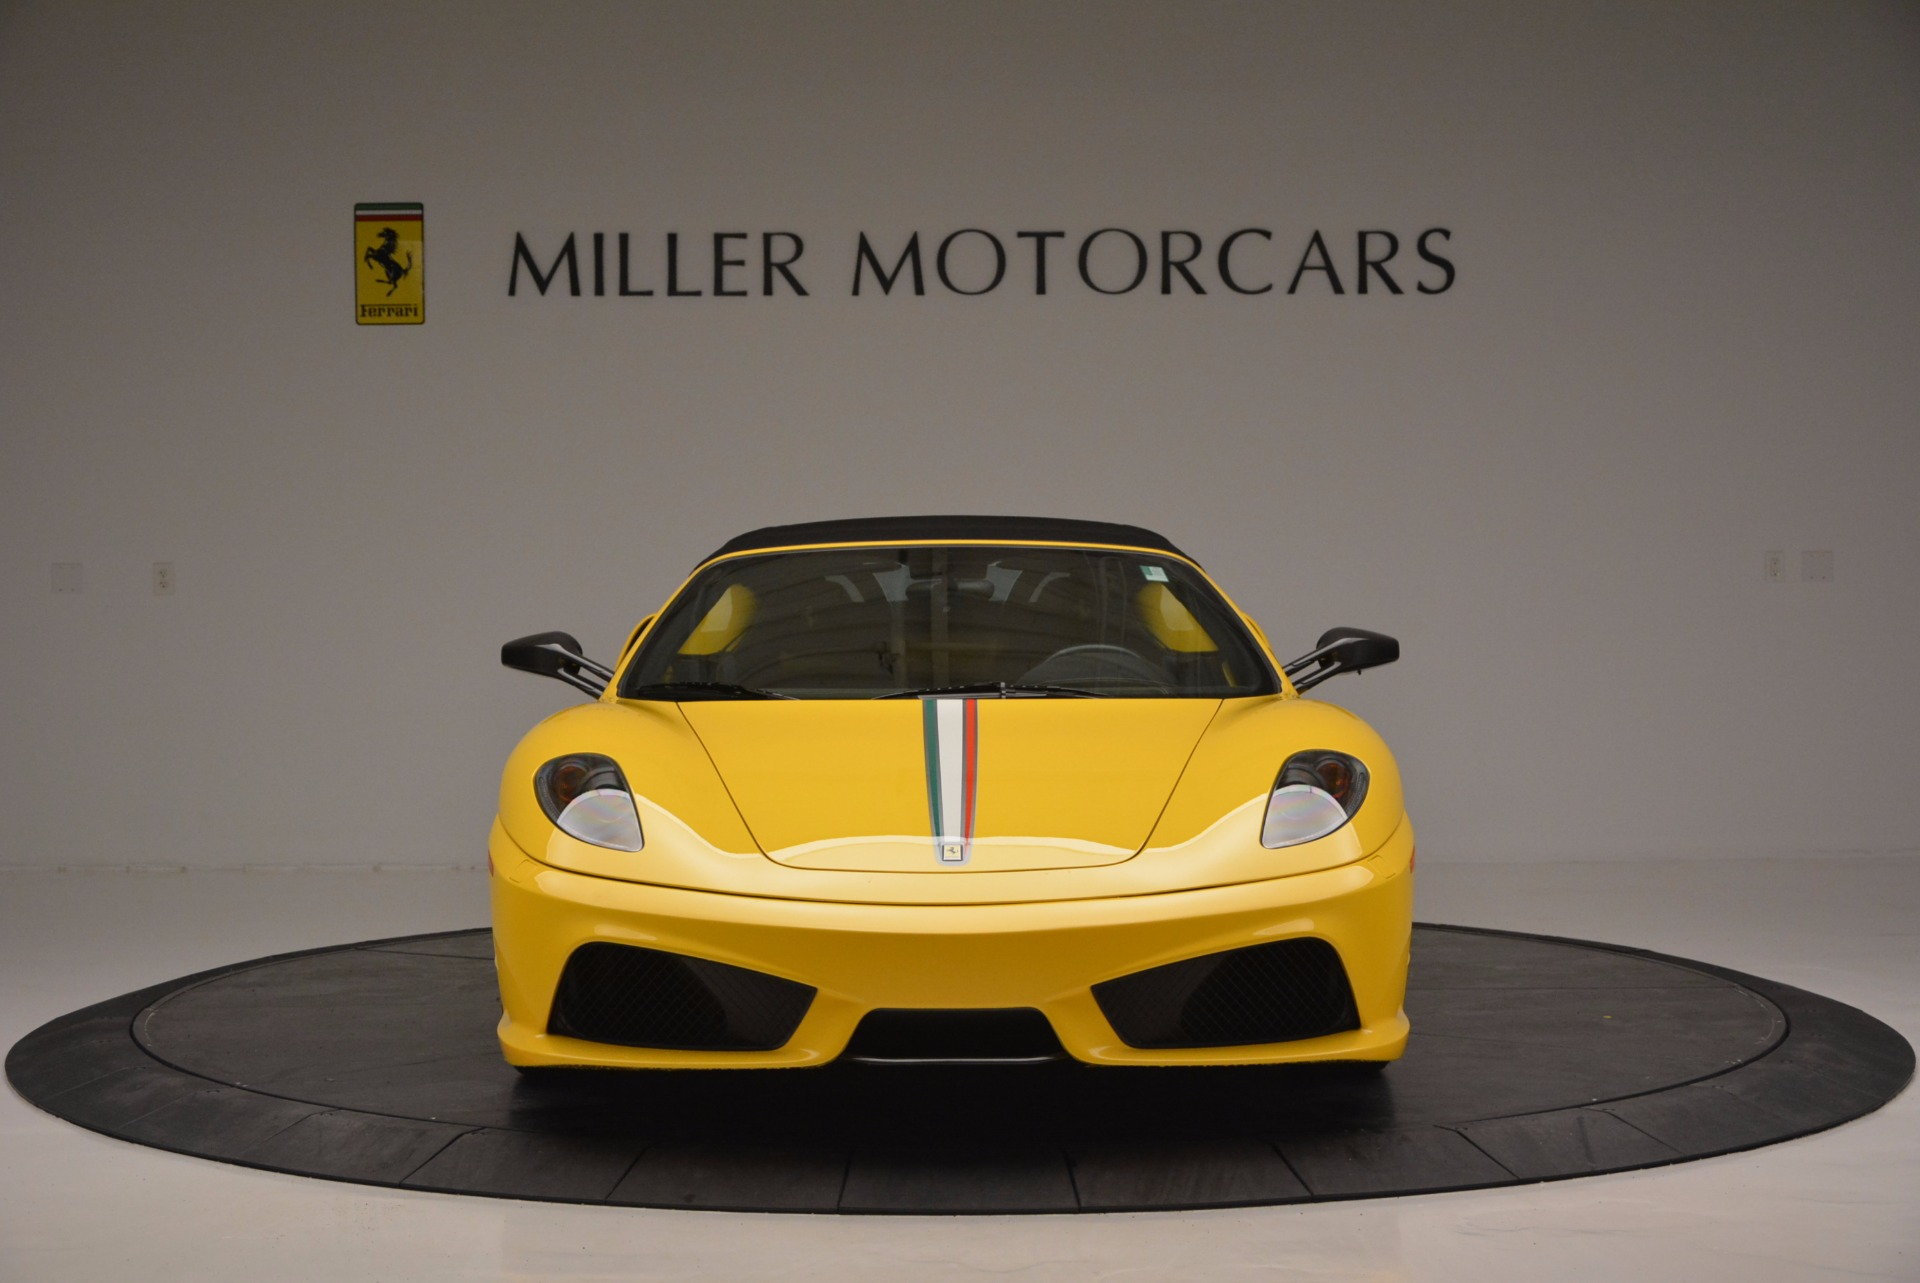 Used 2009 Ferrari F430 Scuderia 16M For Sale In Greenwich, CT 856_p24